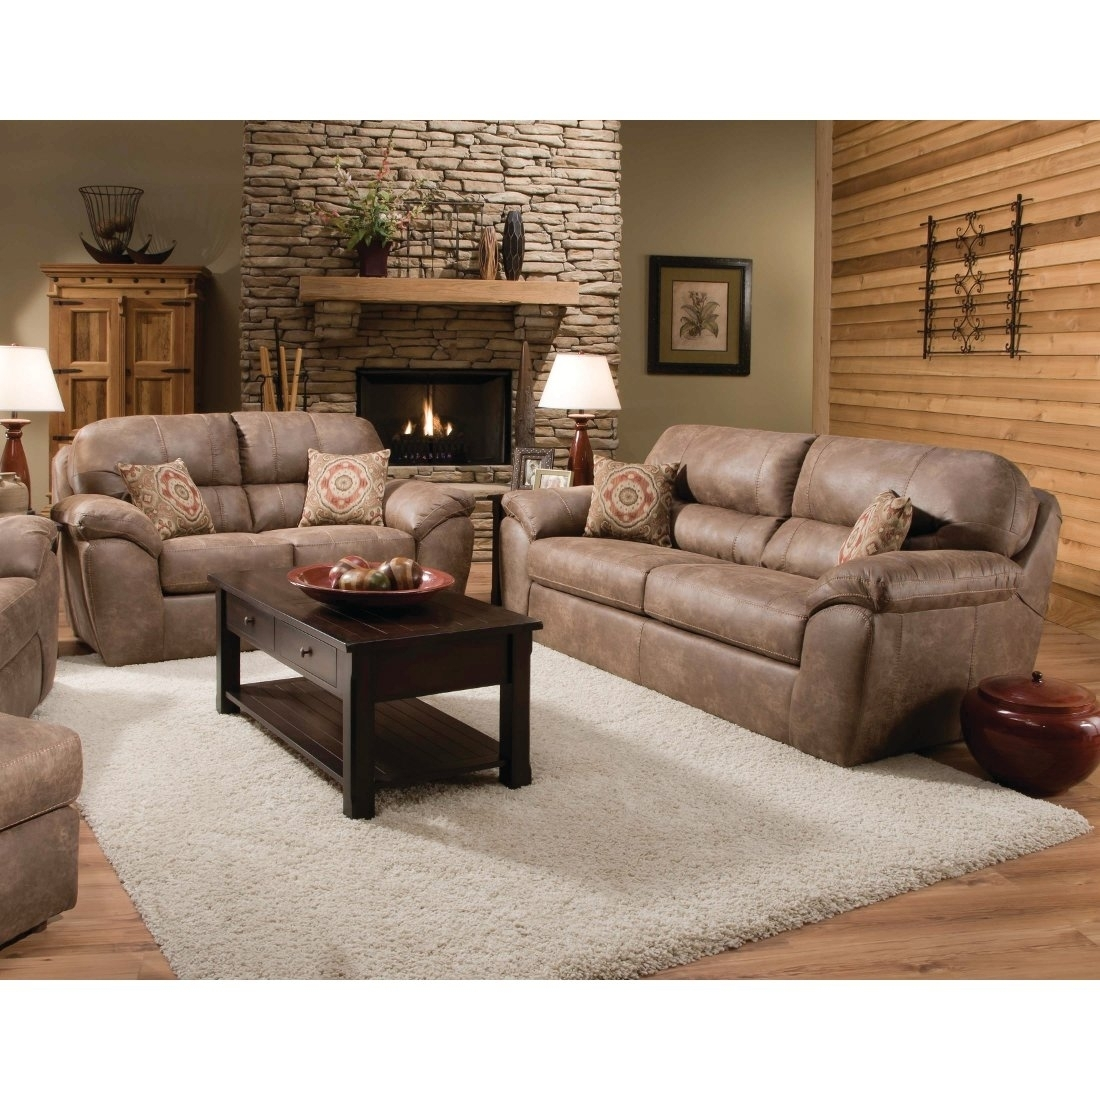 Brilliant Sectional Sofas Cincinnati – Buildsimplehome Within Cincinnati Sectional Sofas (Image 6 of 10)